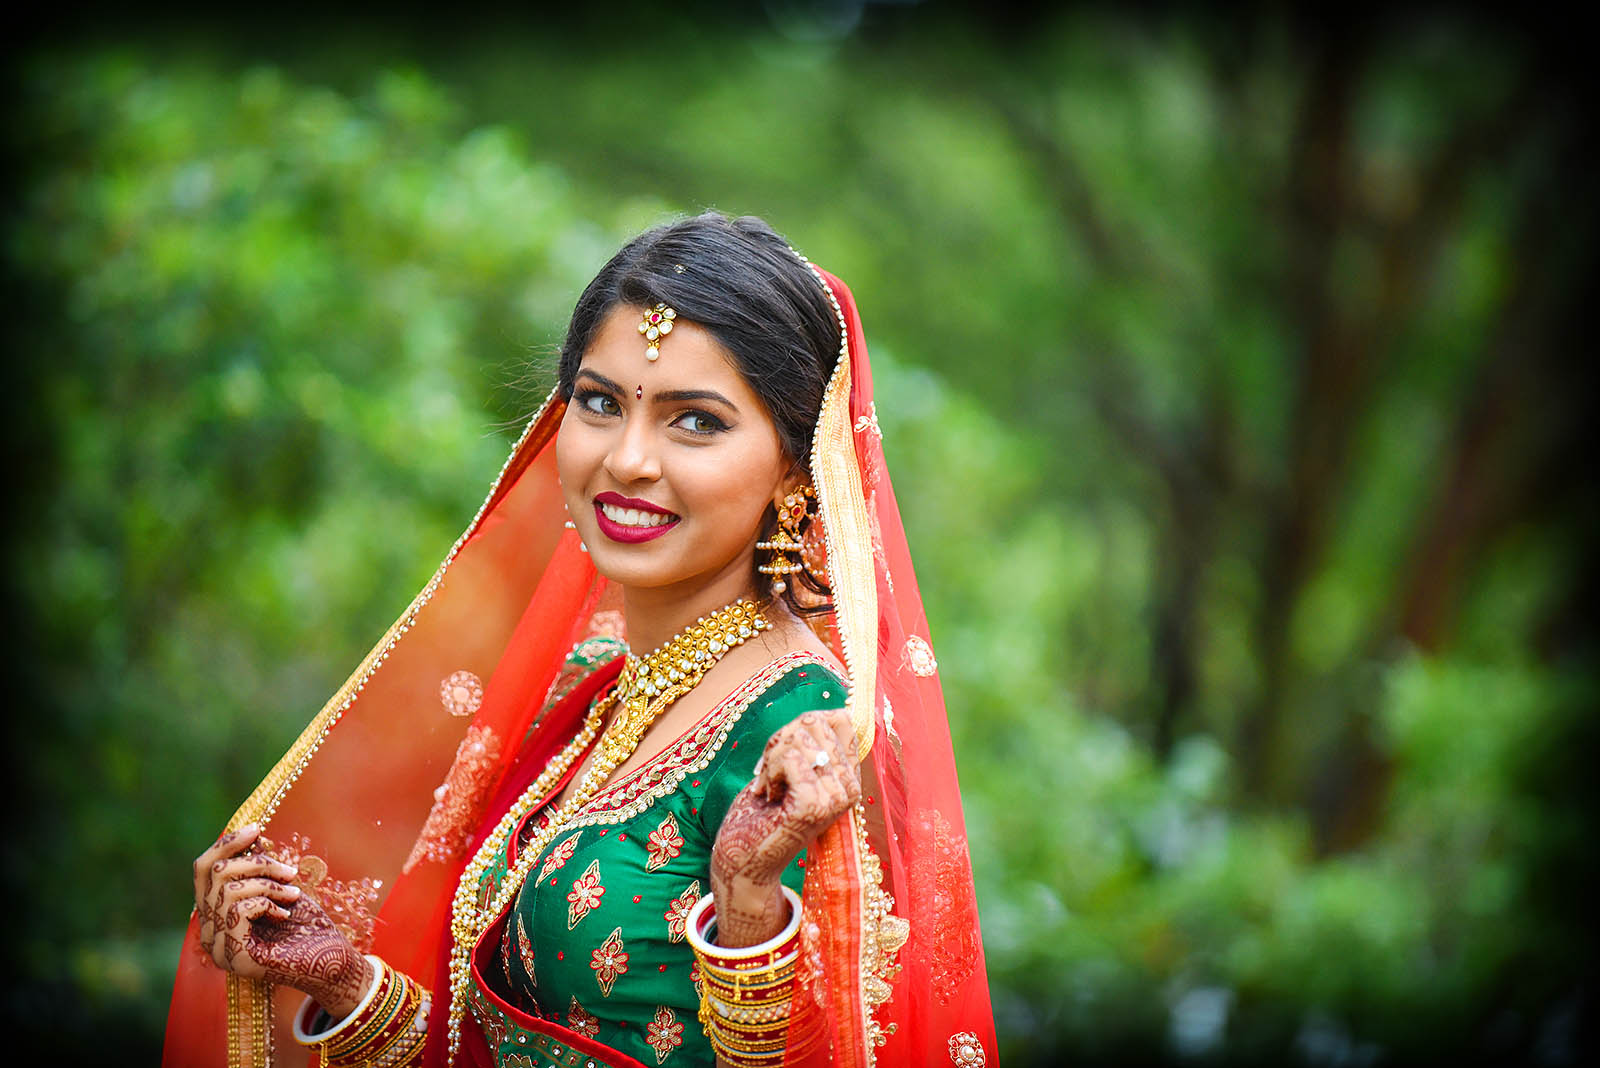 Most Colorful Bride: Hindu Indian Brides always look so beautiful with their colorful mehndi, haar, karn phool, choordiyan and solah shringar.